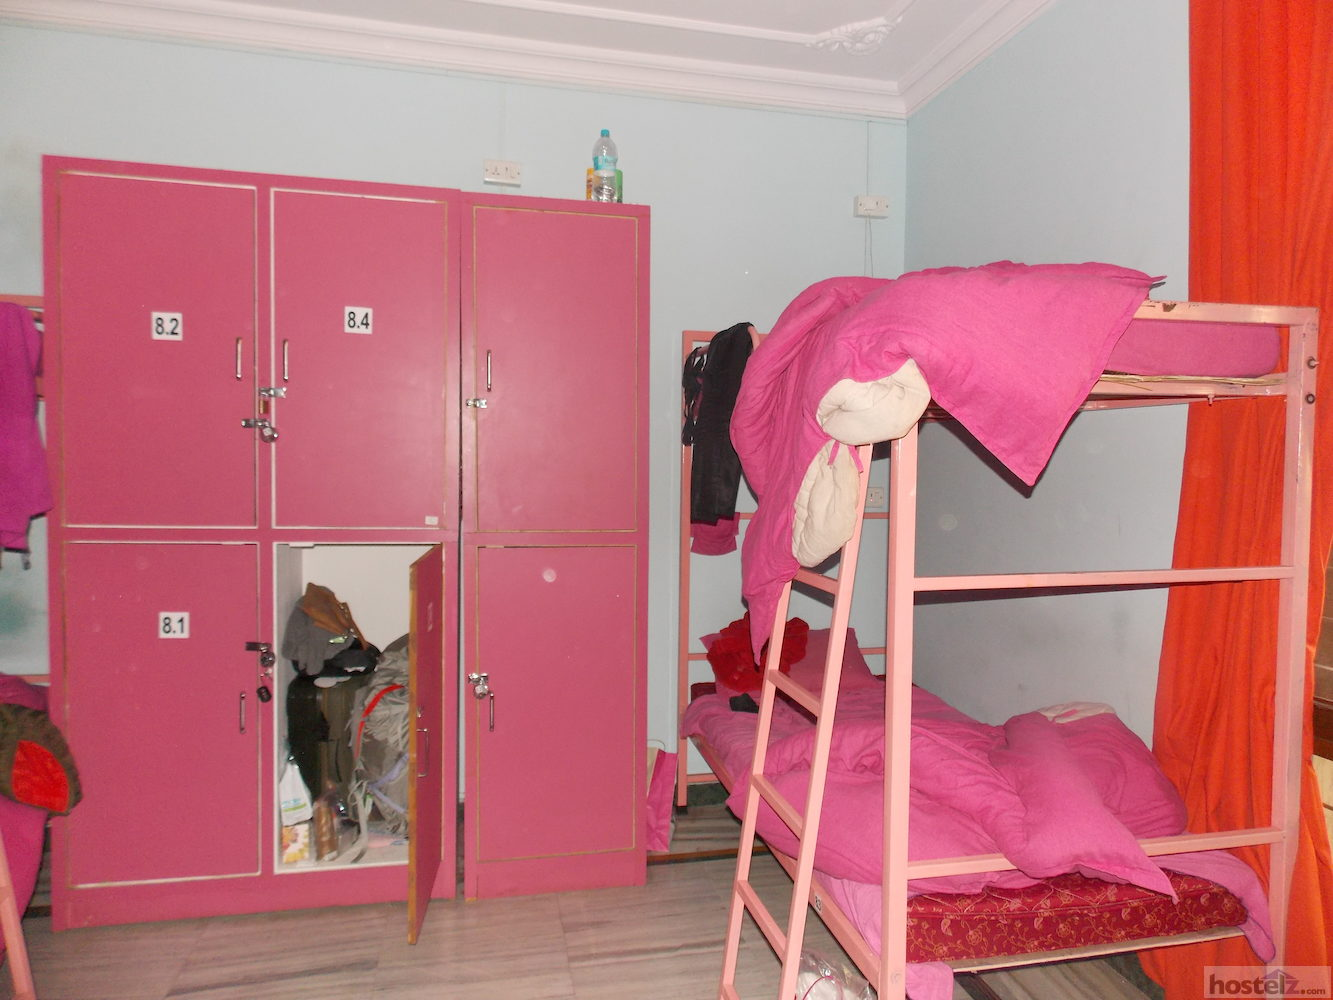 bunk bed and lockers